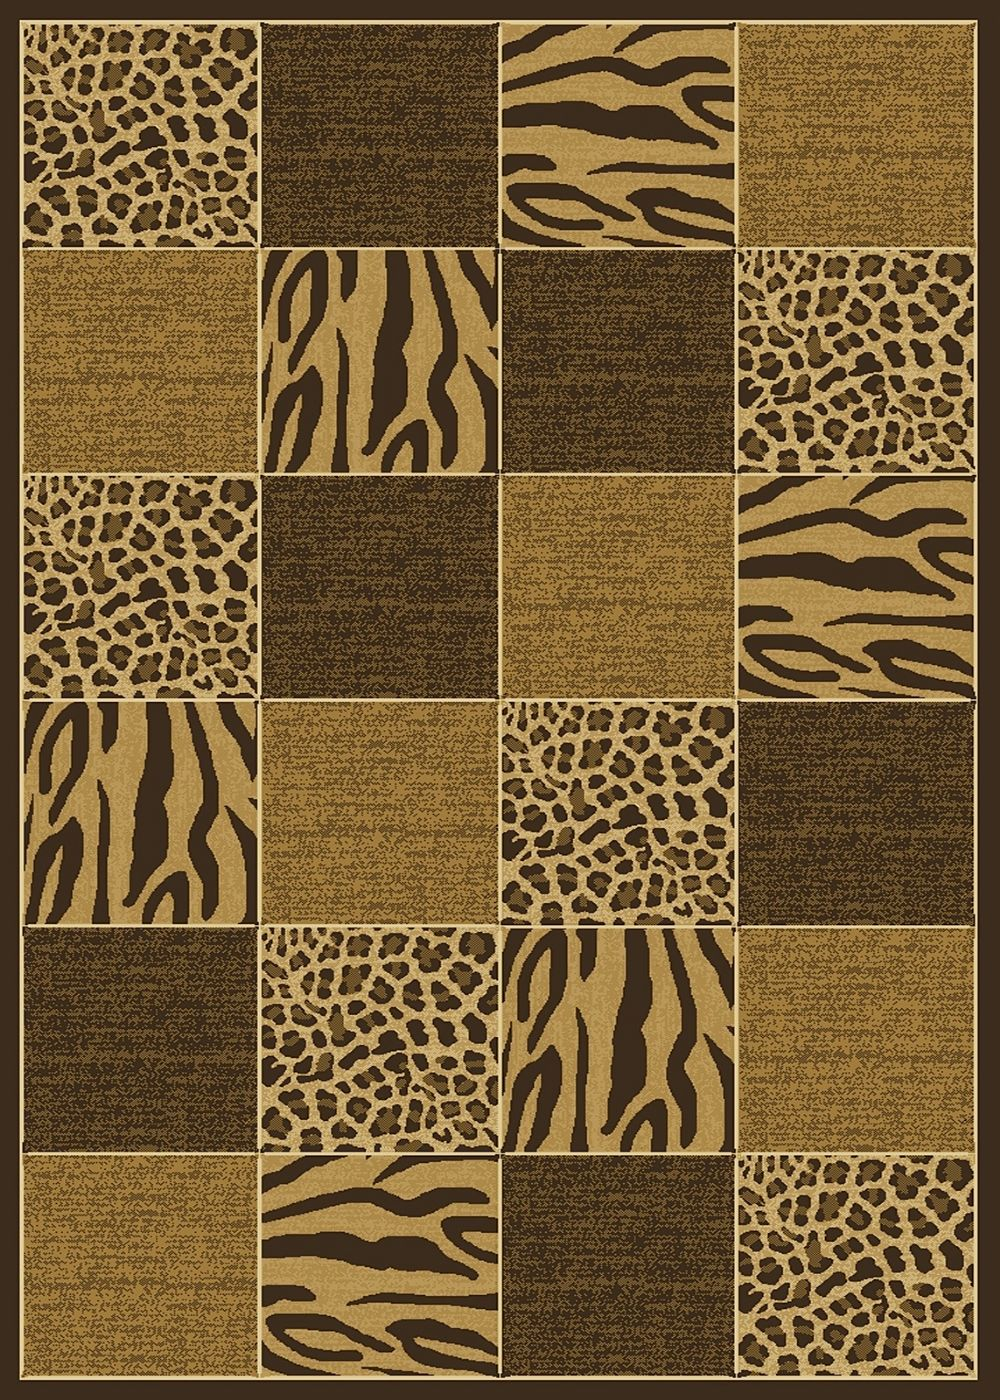 central oriental radiance skins animal inspirations area rug collection